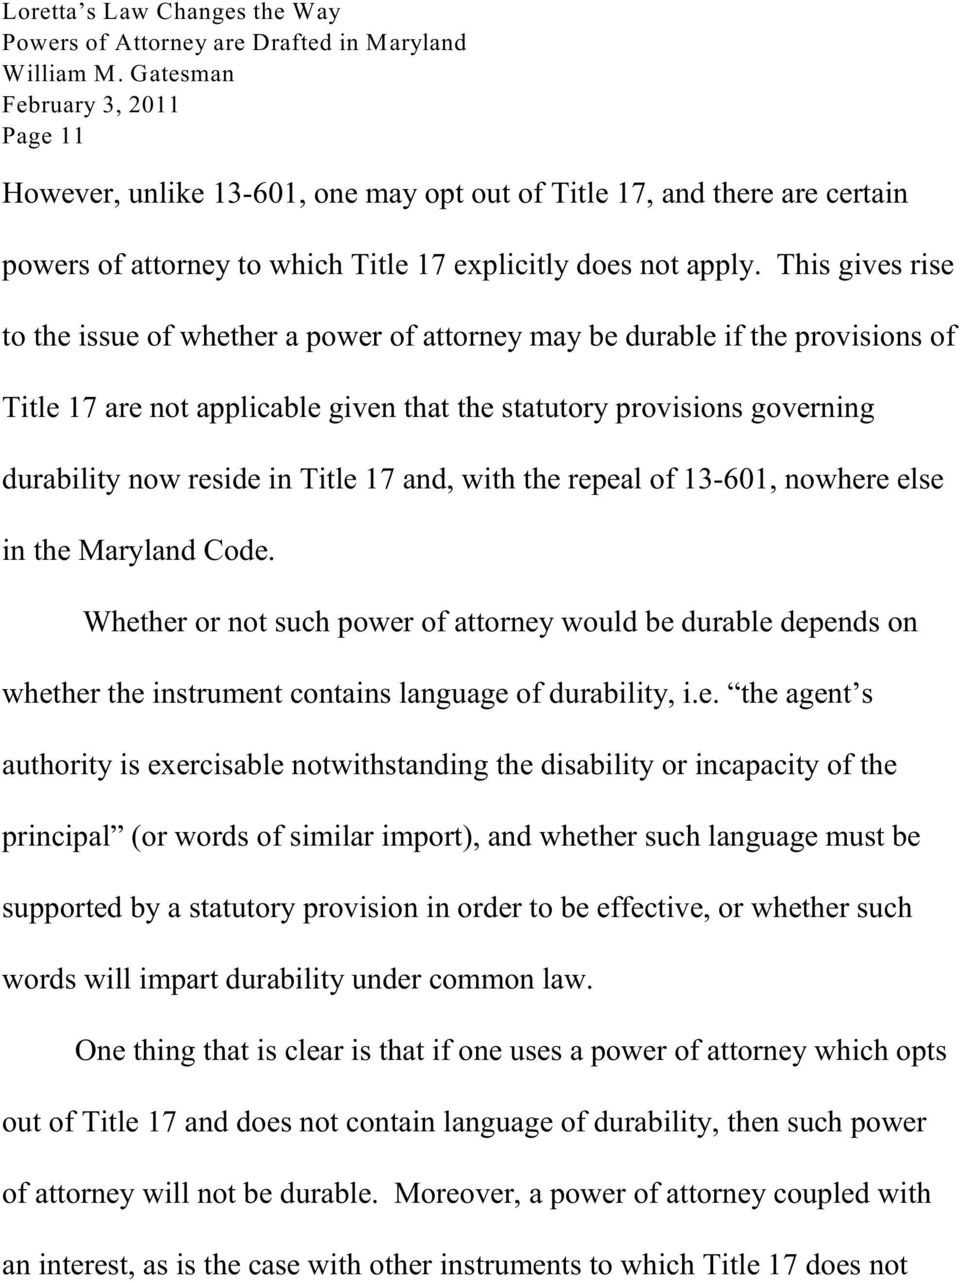 Title 17 and, with the repeal of 13-601, nowhere else in the Maryland Code. Whether or not such power of attorney would be durable depends on whether the instrument contains language of durability, i.